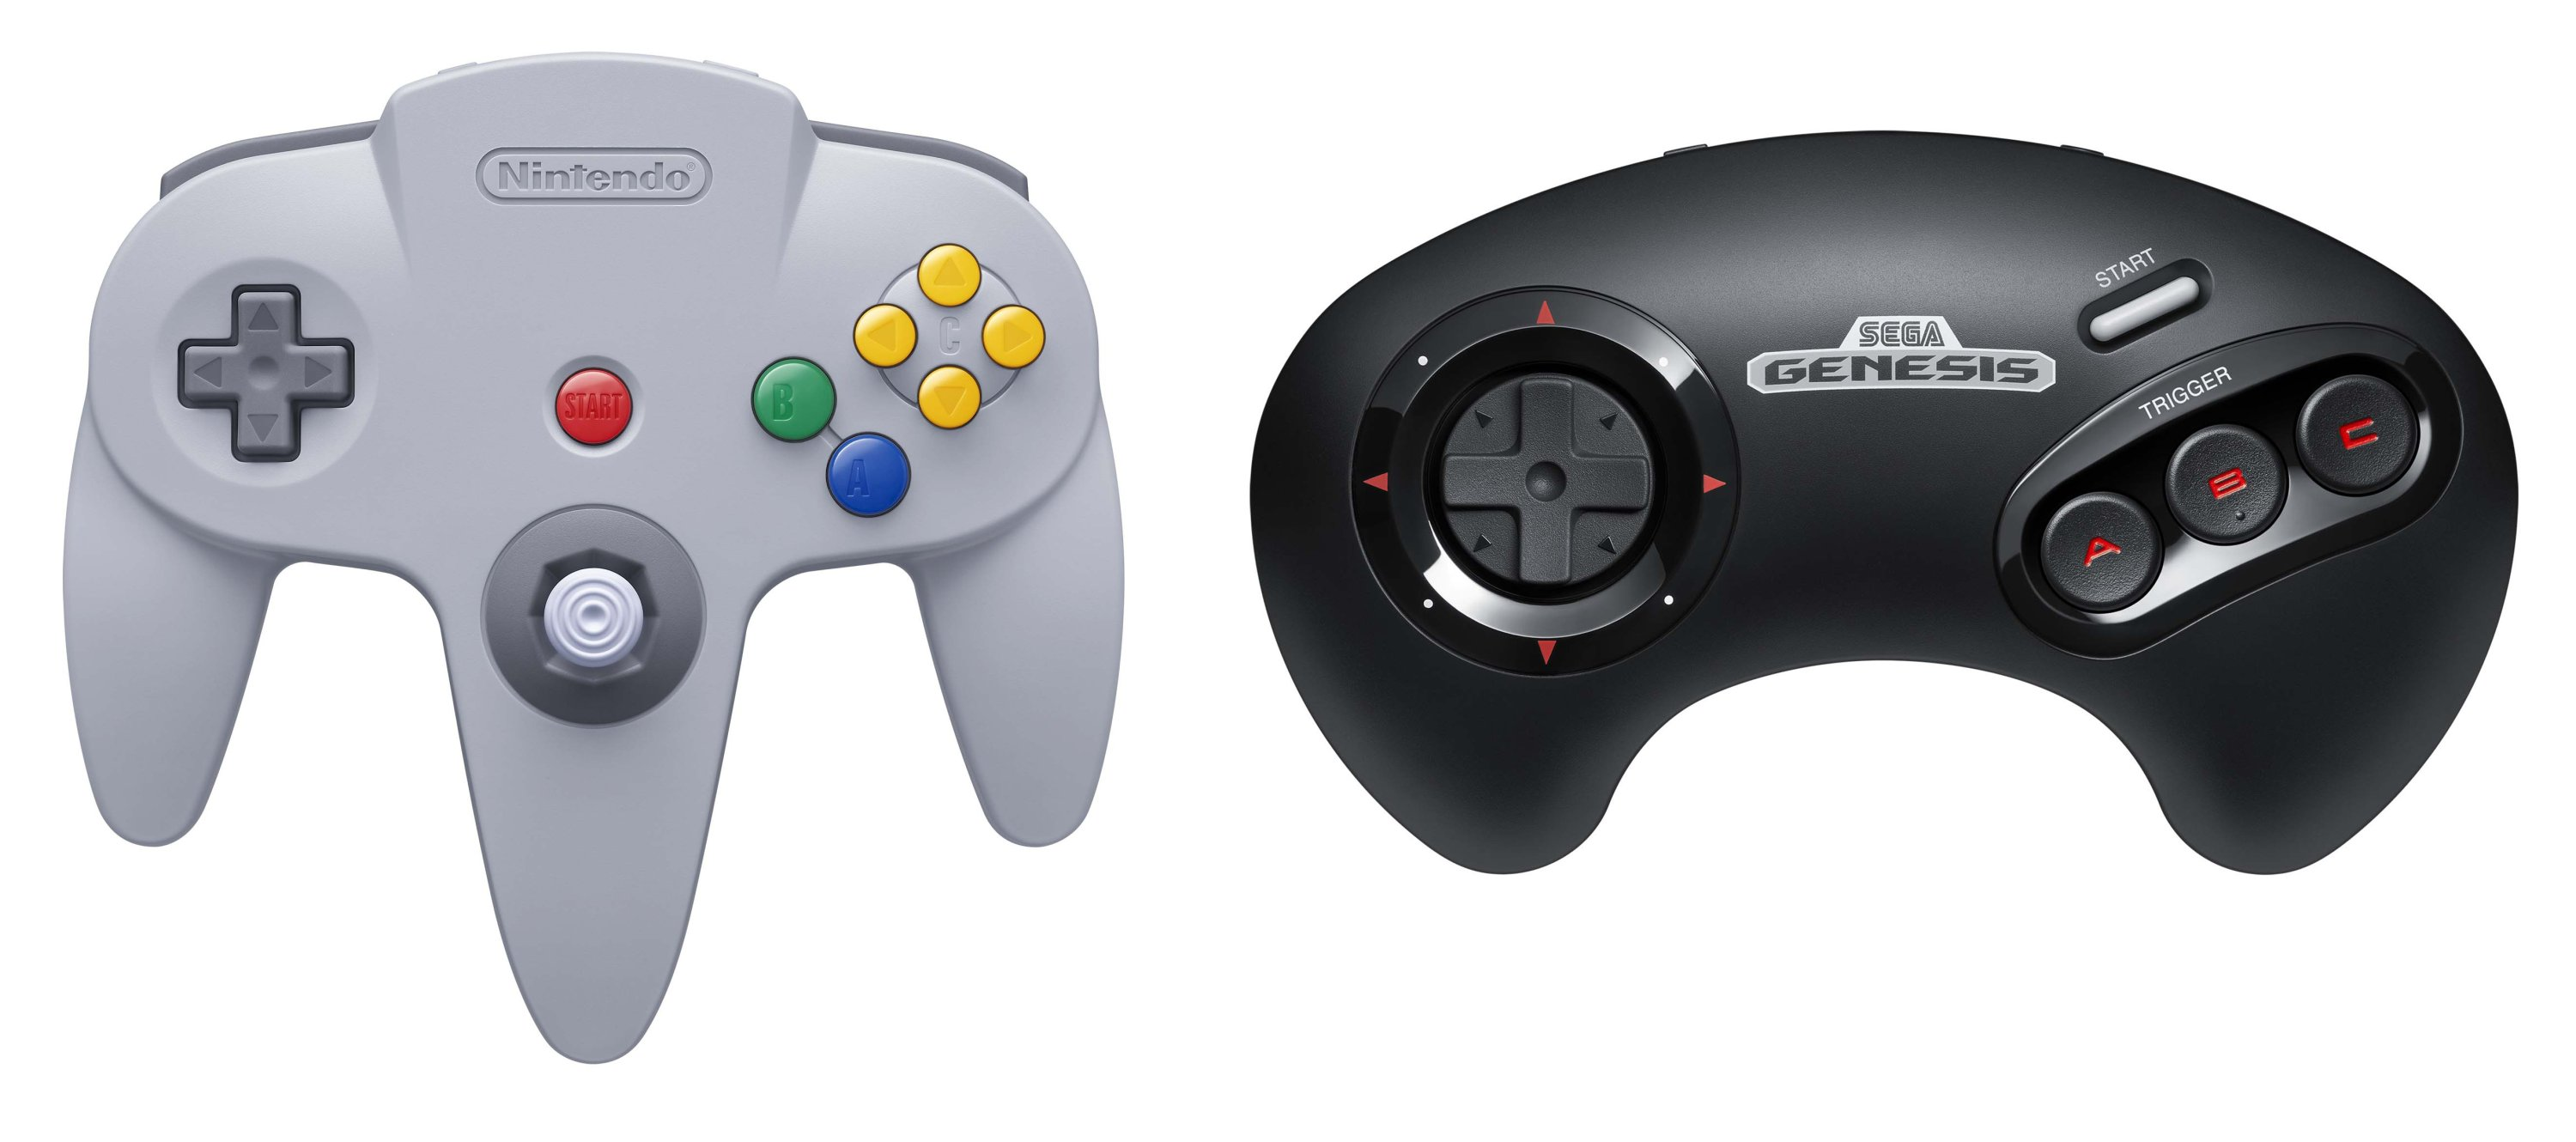 The new wireless Nintendo 64 (L) and Sega Genesis controllers are seen in this promotional photo released by Nintendo (Credit: Nintendo)